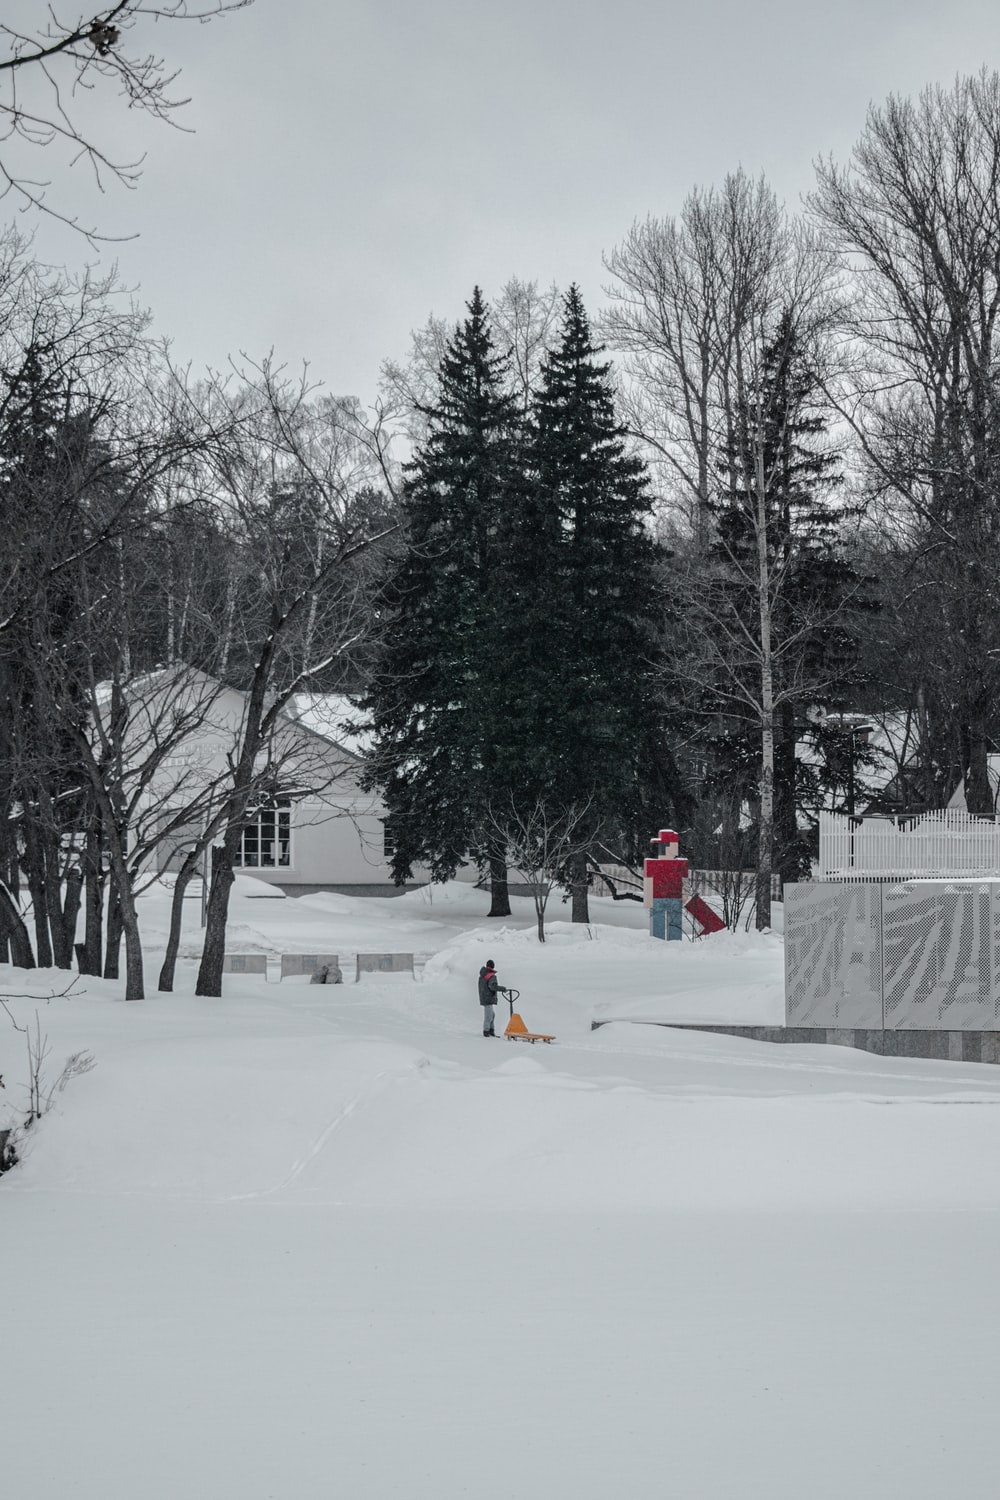 person in red jacket and yellow pants standing on snow covered ground near bare trees during